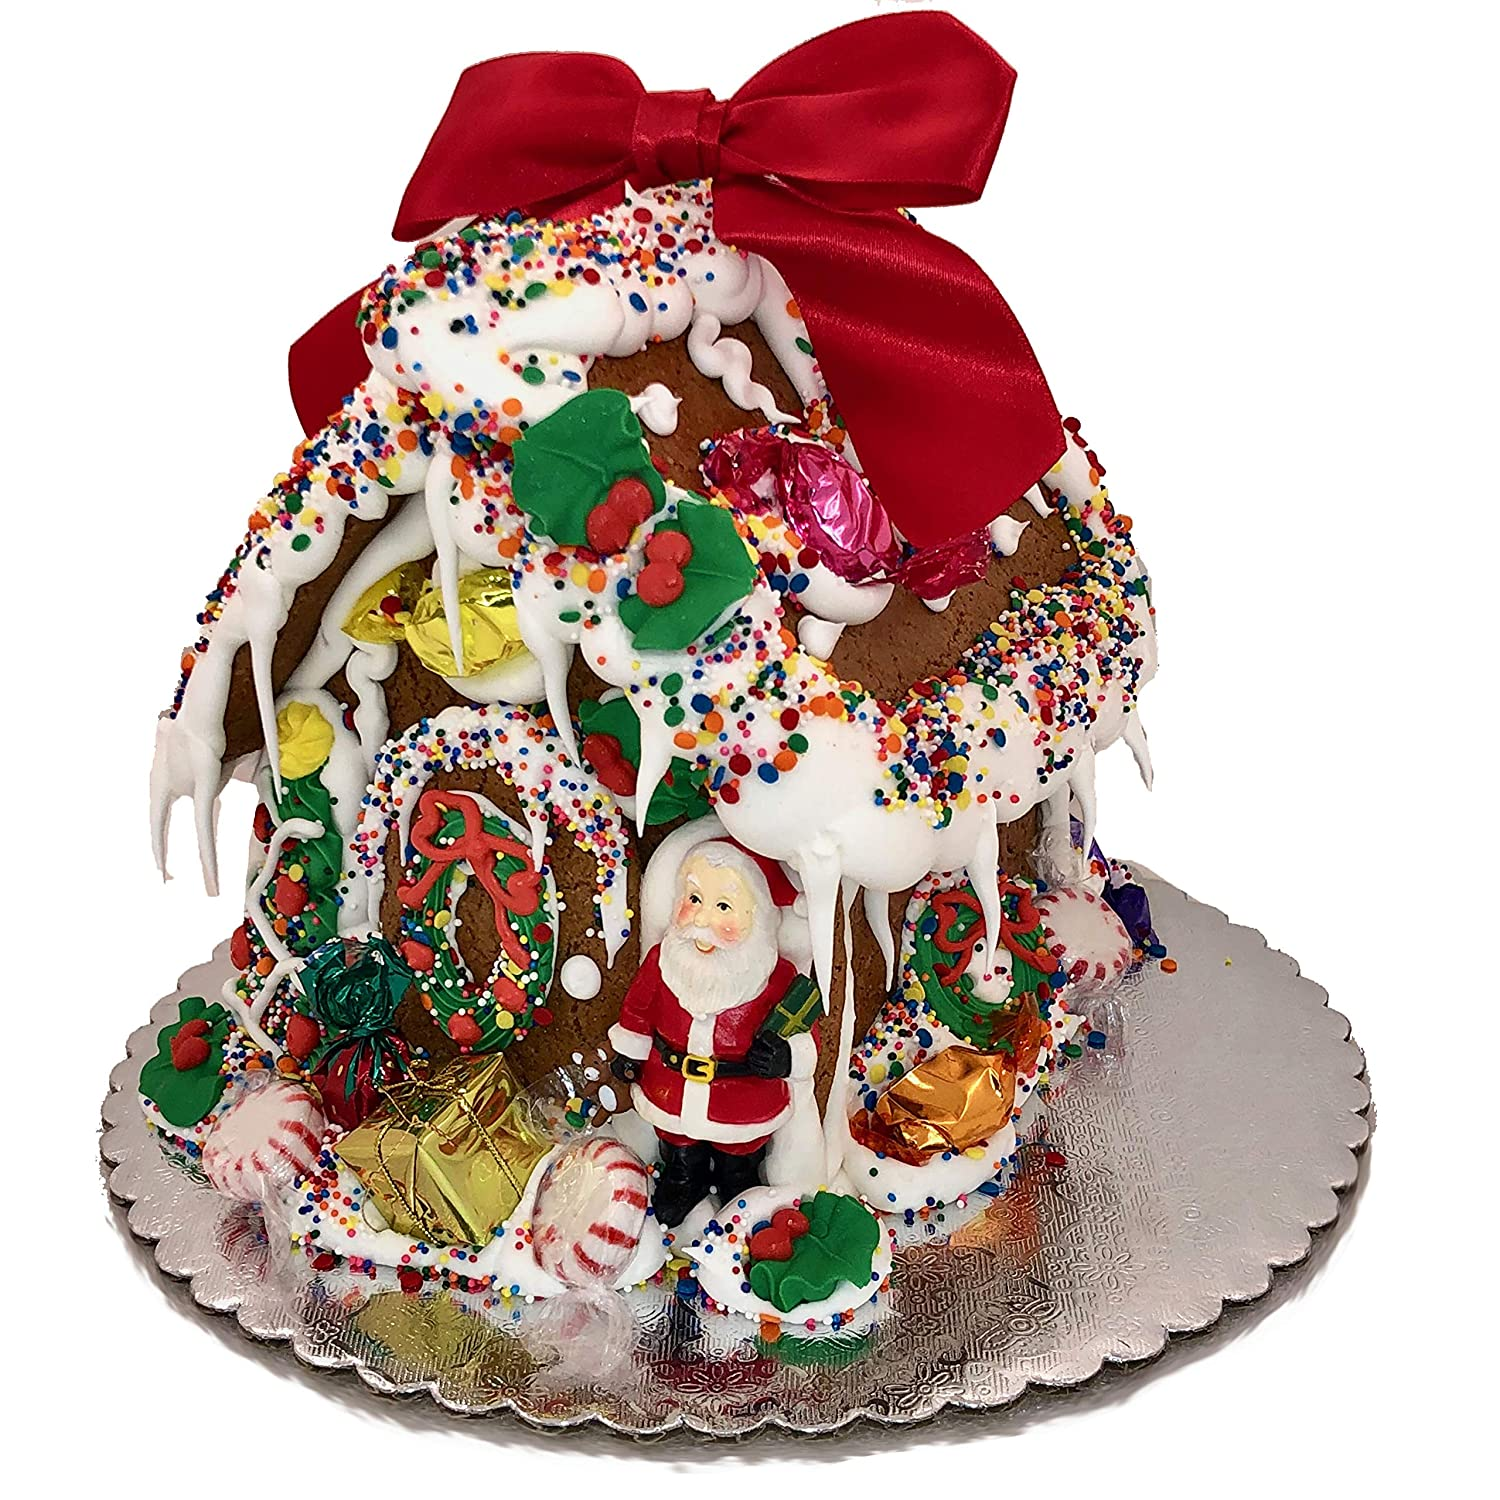 Gingerbread House, EDIBLE Fully Decorated and Shipped Christmas Gift by  BakersDozenToGo